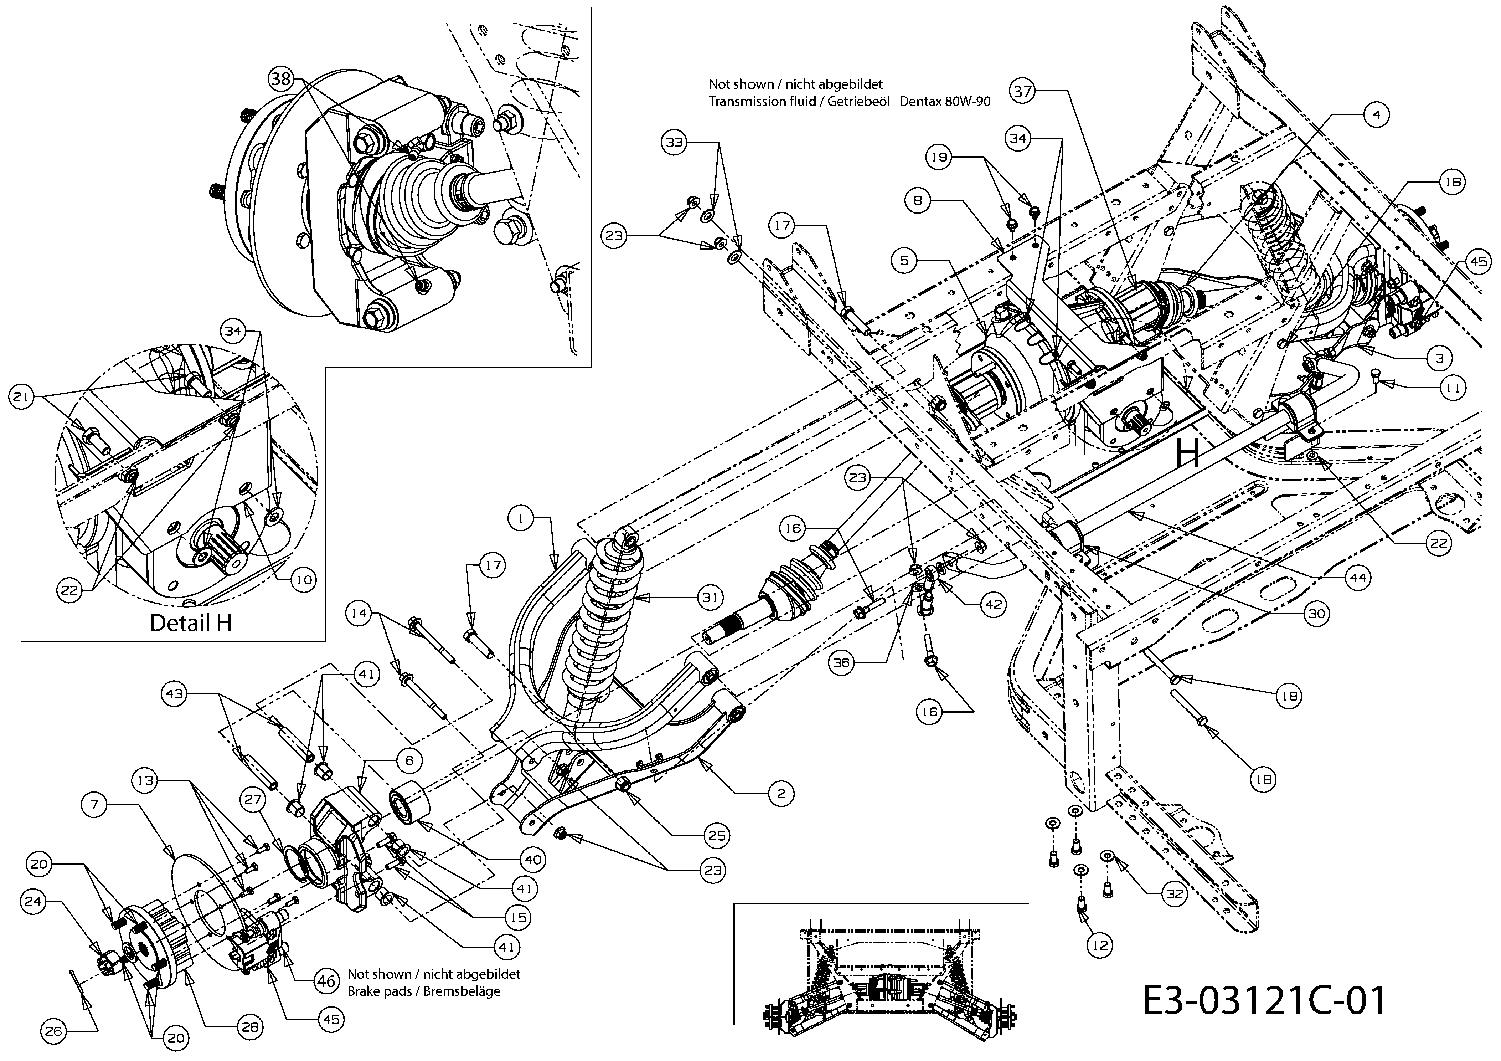 1974 Cushman Truckster Wiring Diagram Diagrams Imageresizertool Com 898467 9010 Jims Scooter Site